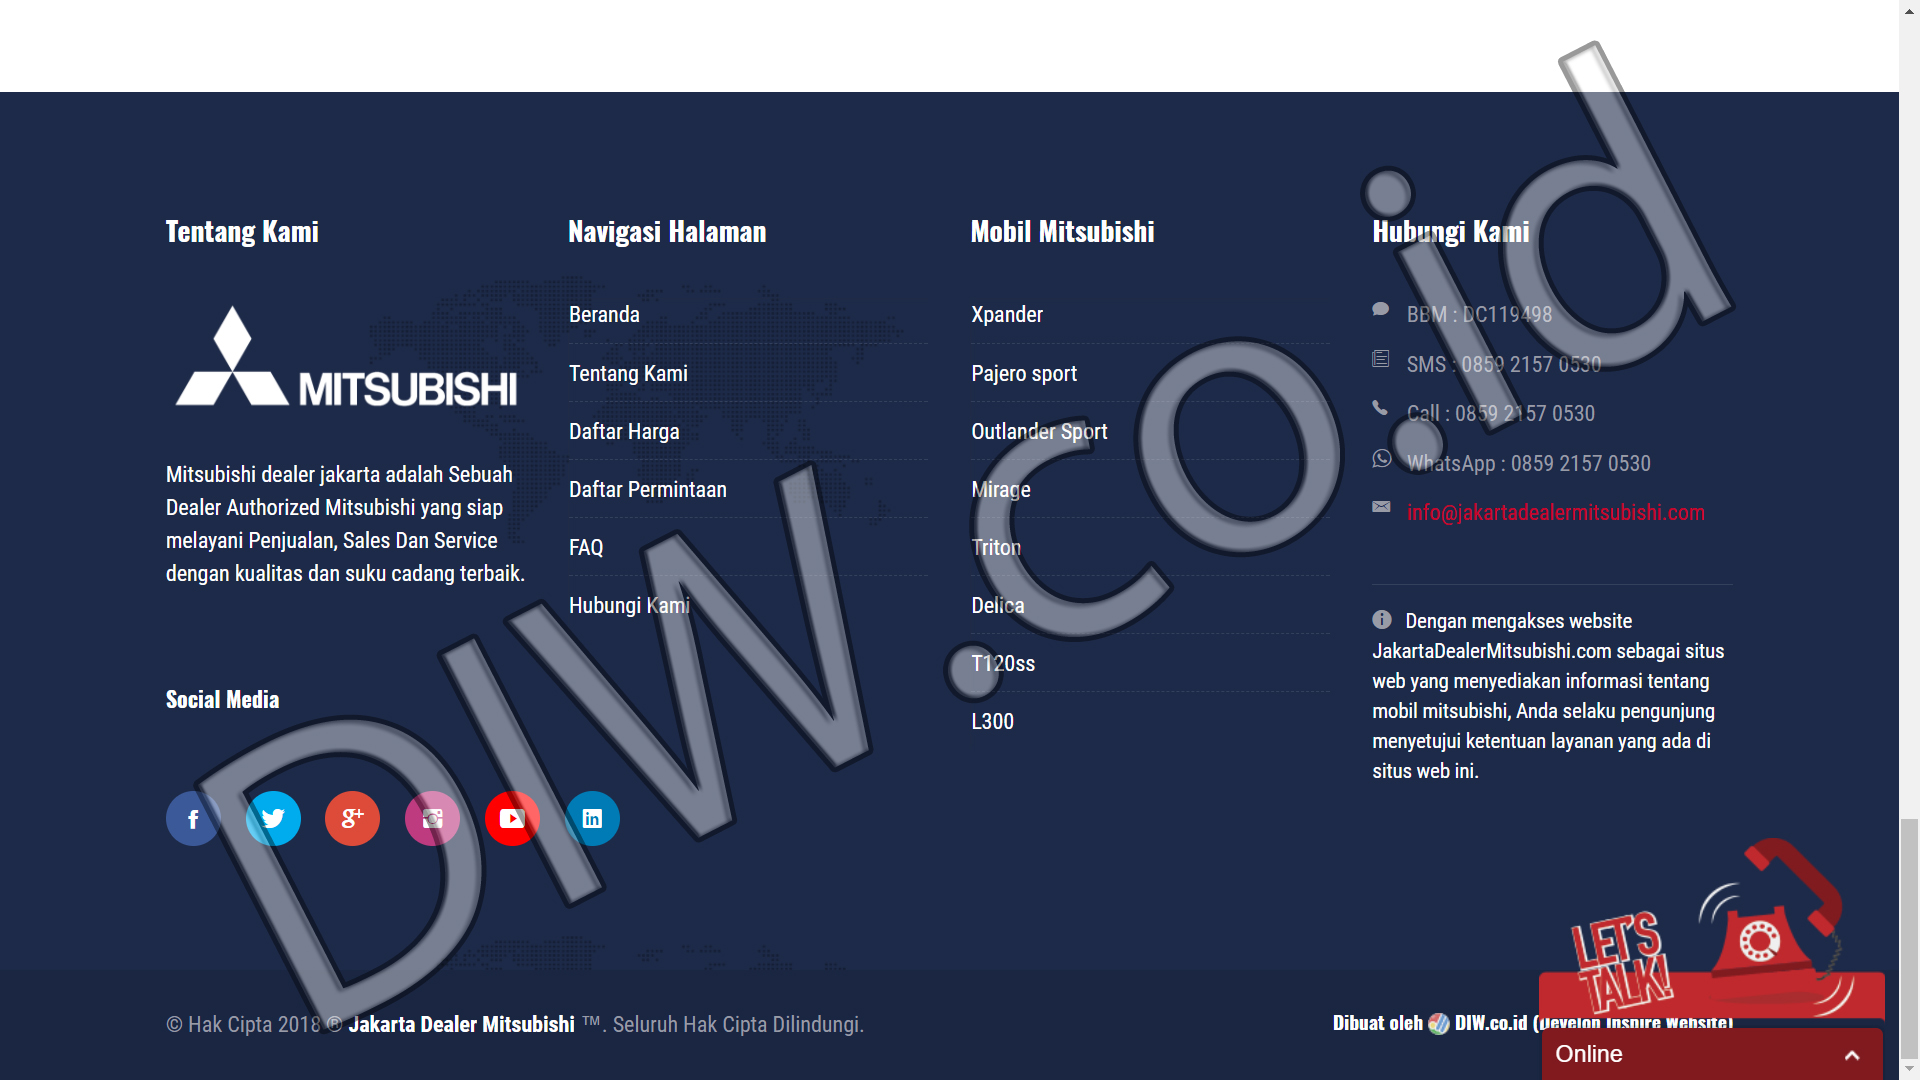 Portfolio 3 - Jakarta Dealer Mitsubishi - Andri Sunardi - Freelancer - Web Developer - CEO DIW.co.id